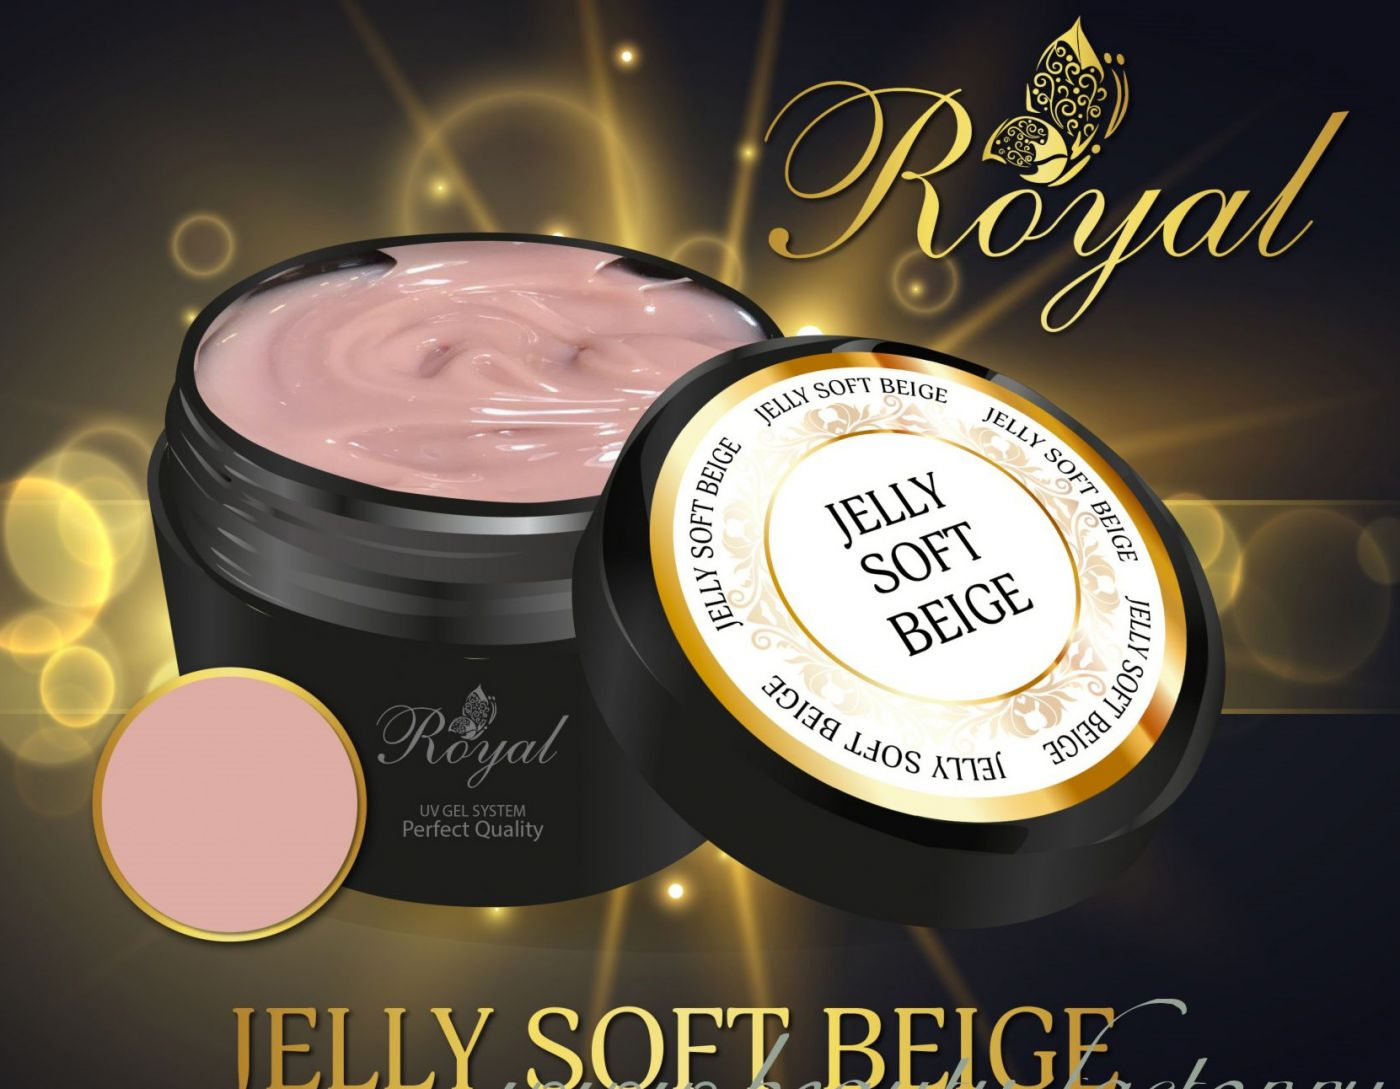 SOFT BEIGE CLASSIC JELLY ROYAL GEL